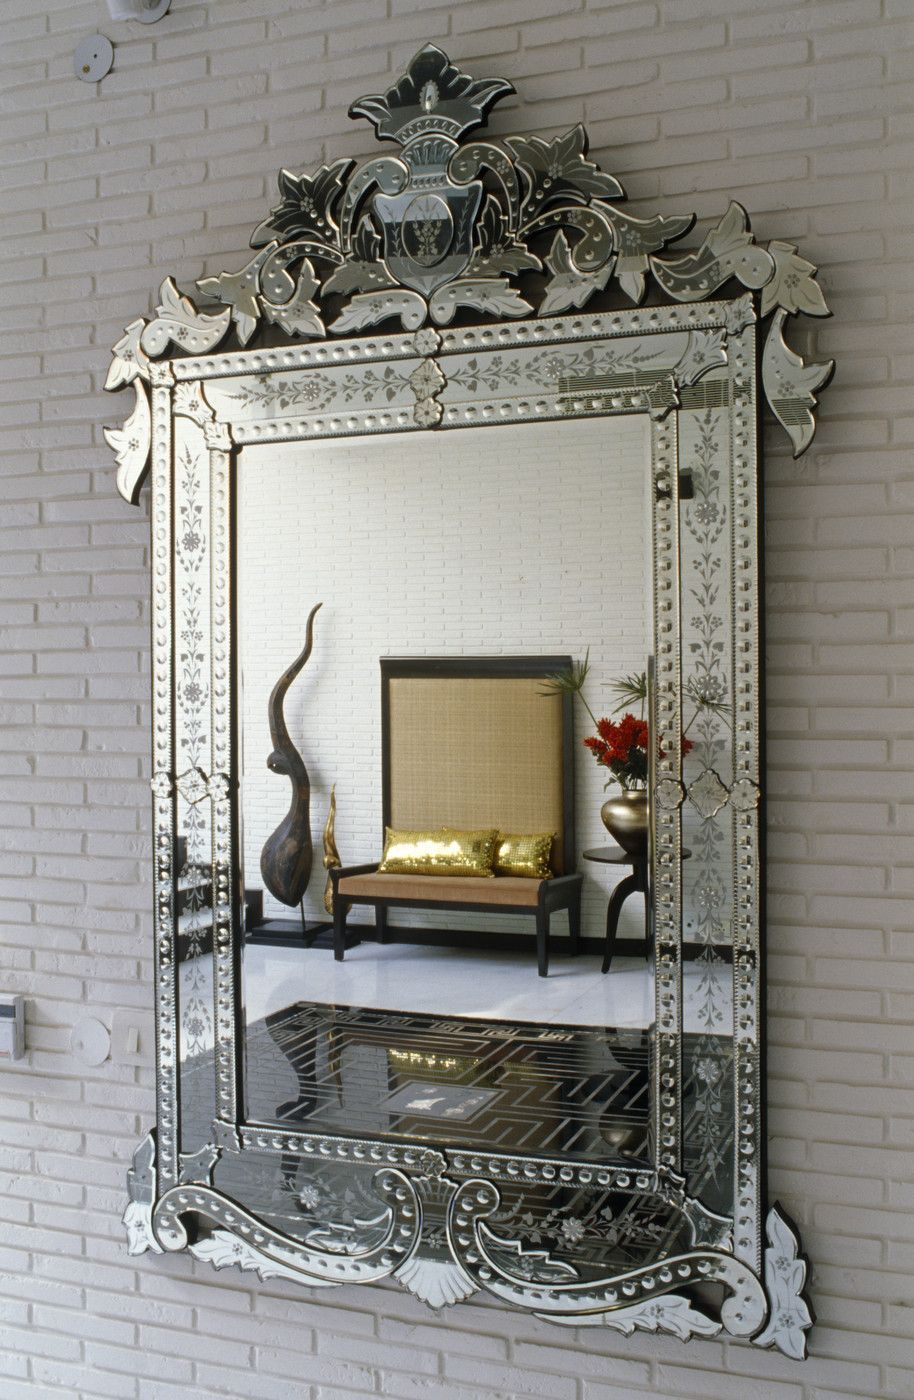 The Kerchum Residence Is A Perfect Mix Of Modern: In The Right House, With The Right Mix Of Decor. I Like These Venetian Mirrors. (With Images